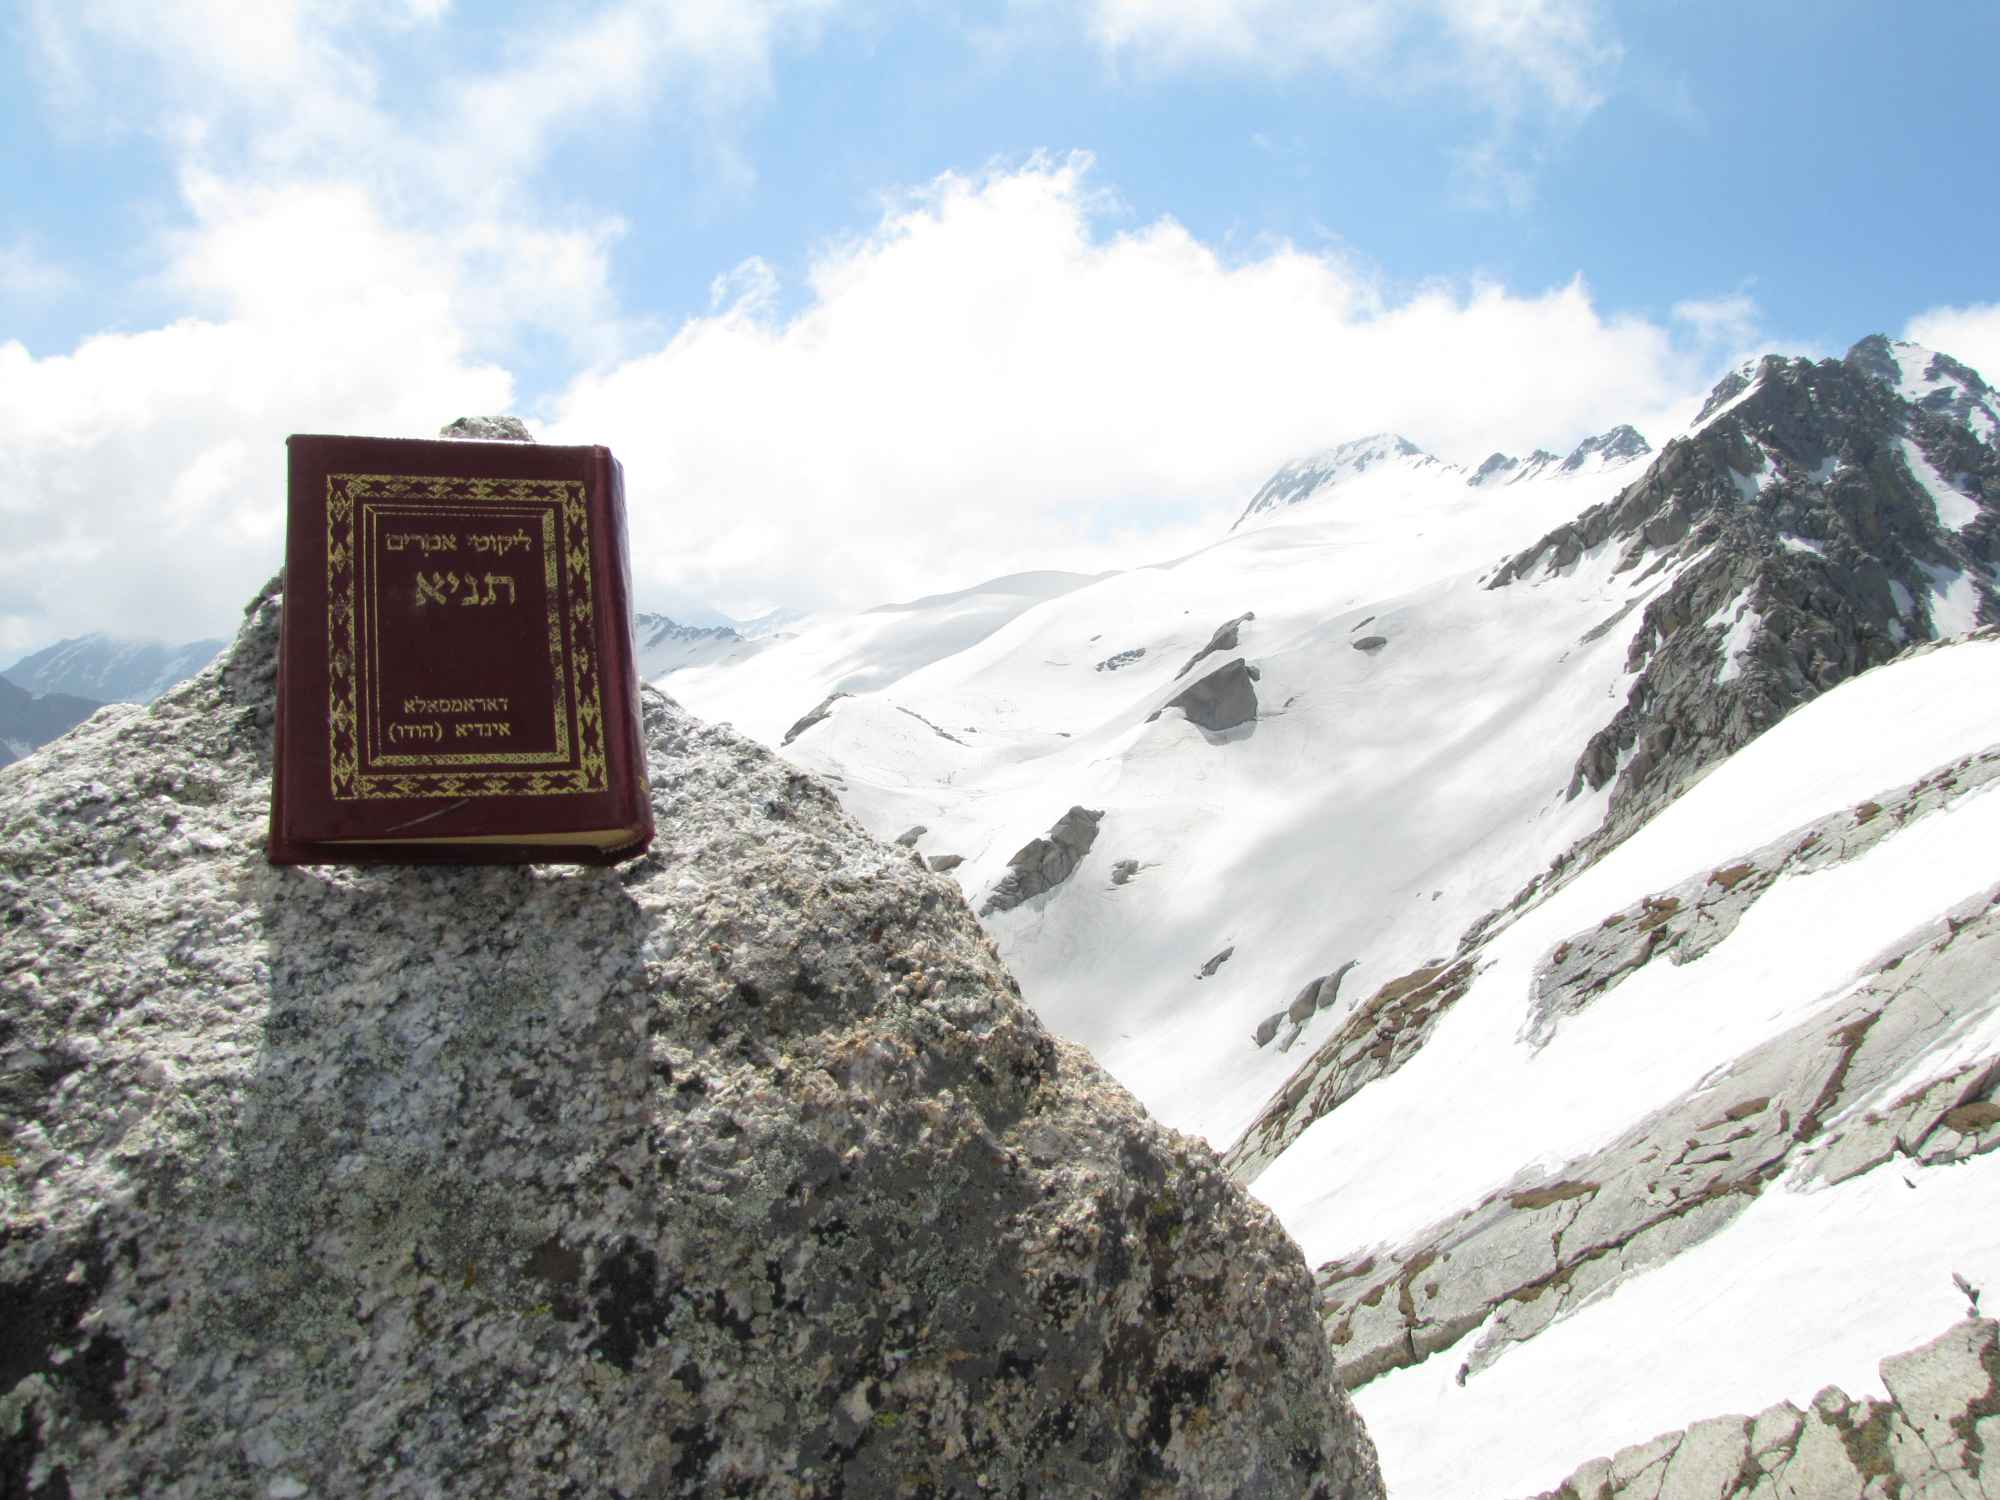 A book of Tania, or Chabad Hasidic writings, on a Himalayan mountaintop close to Rabbi Dror Shaul's Chabad centers near Dharamshala. (Courtesy)